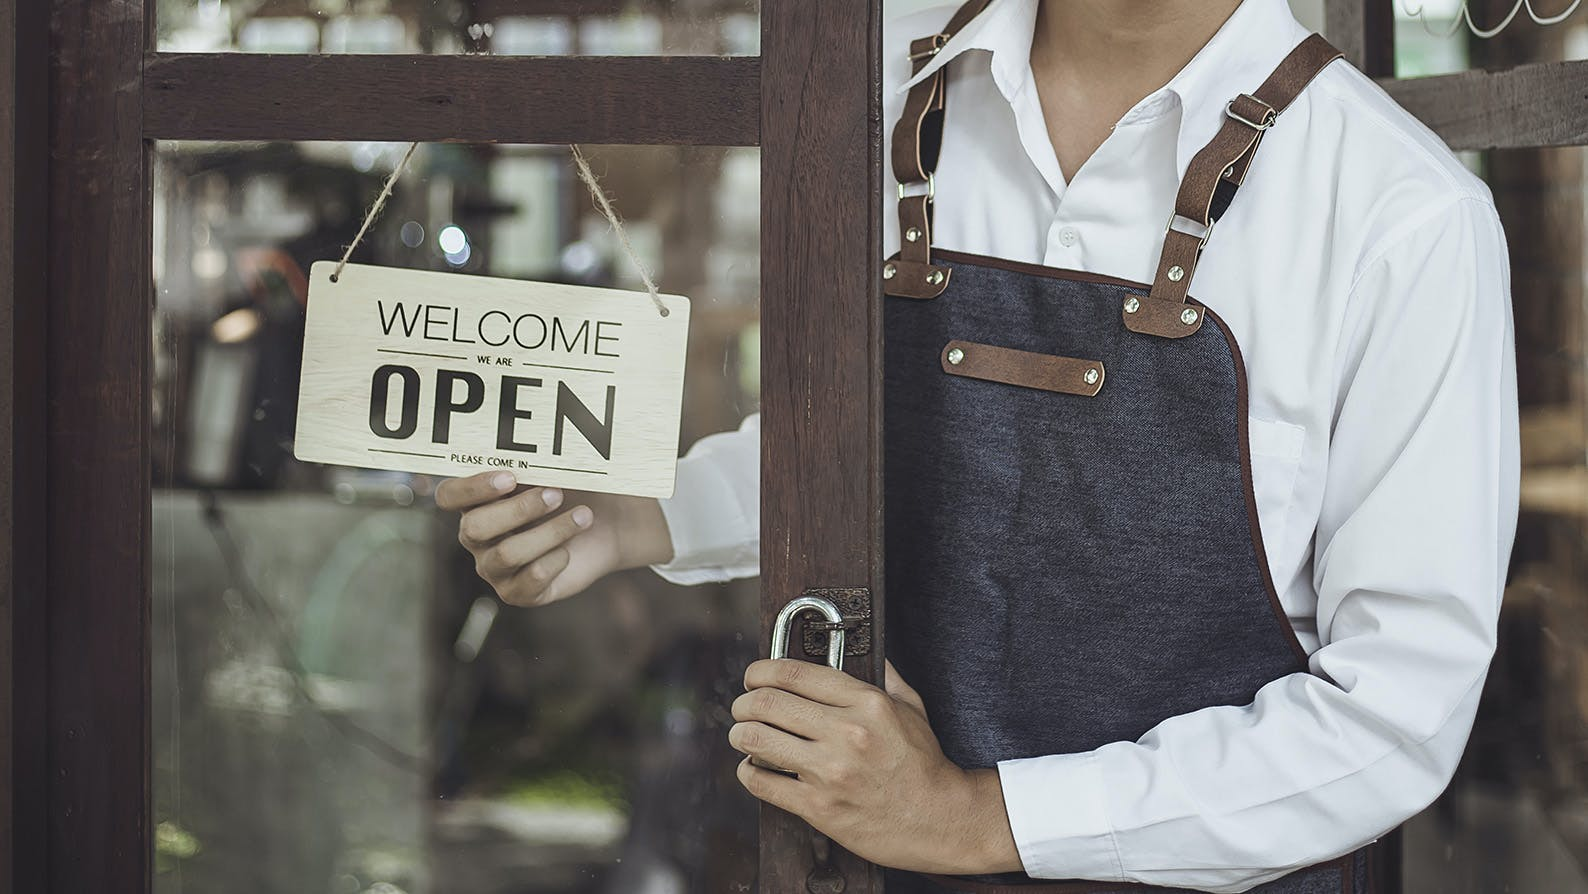 Continued supports needed for businesses to stay open